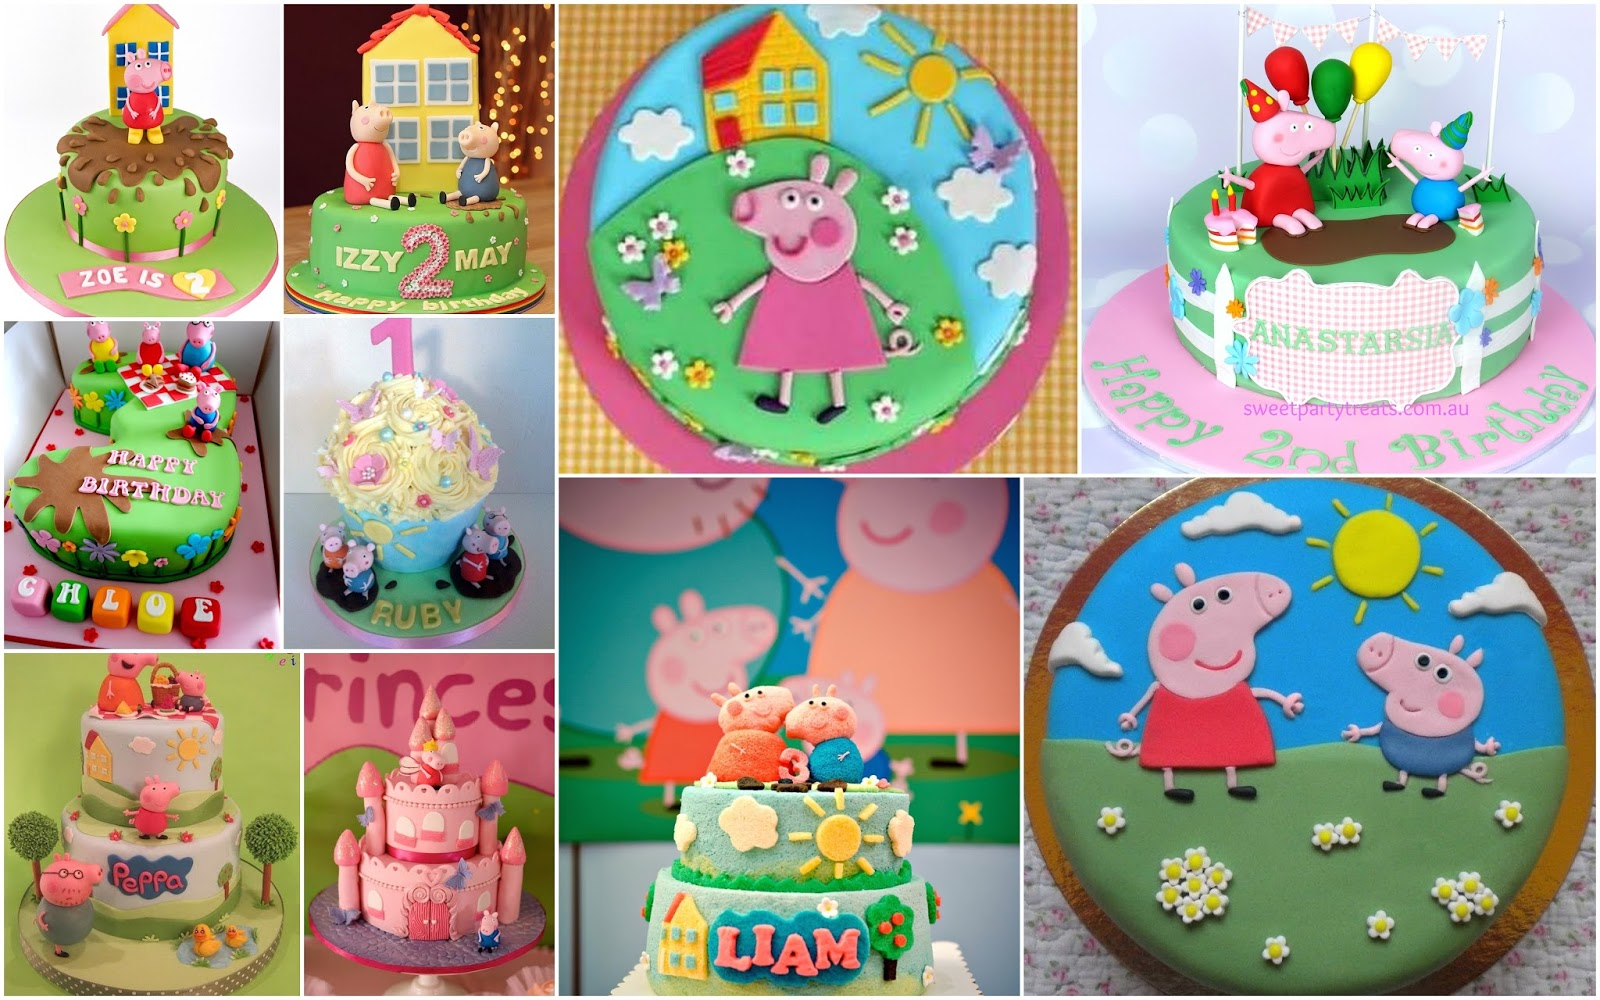 decorations peppa party us decor instadecor birthday pig